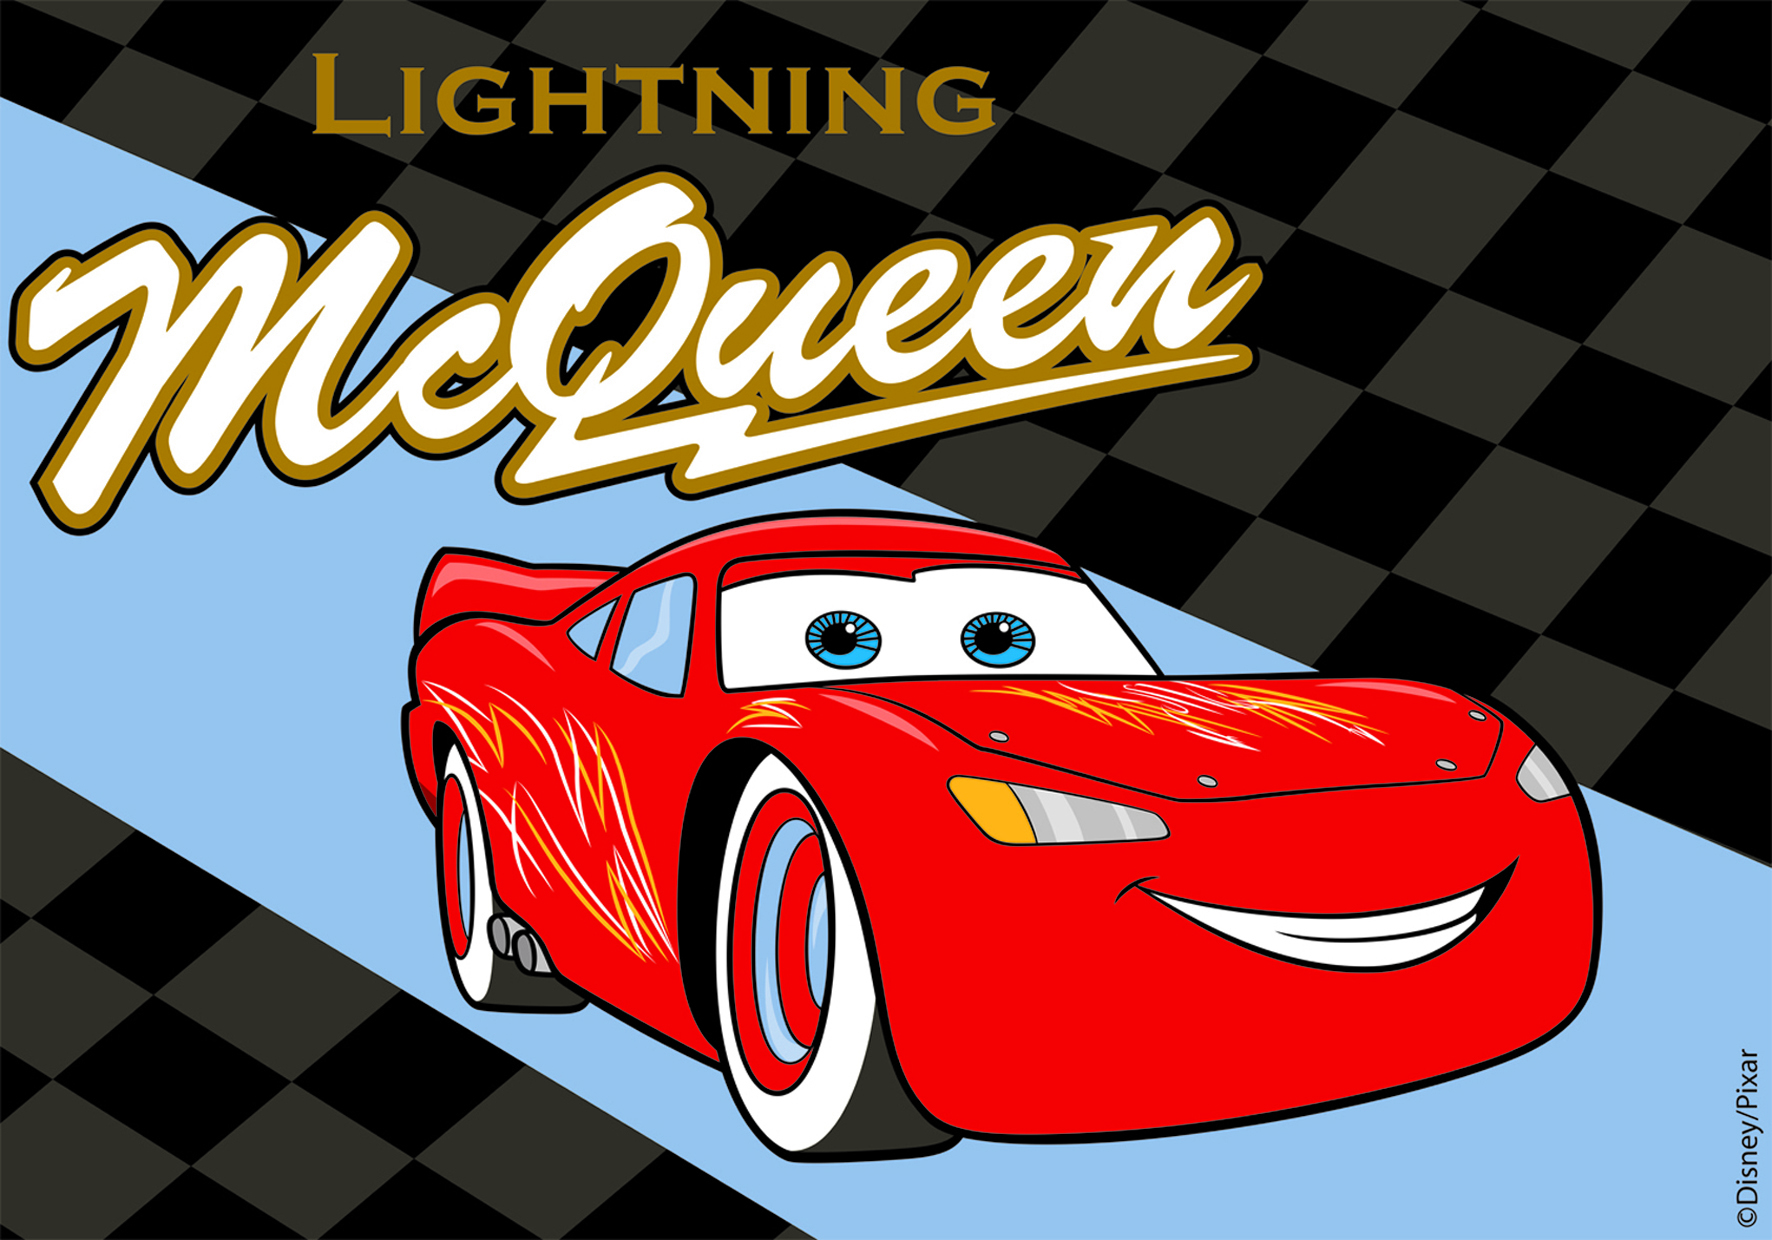 Covor Disney Kids McQueen Lightning, Imprimat Digital